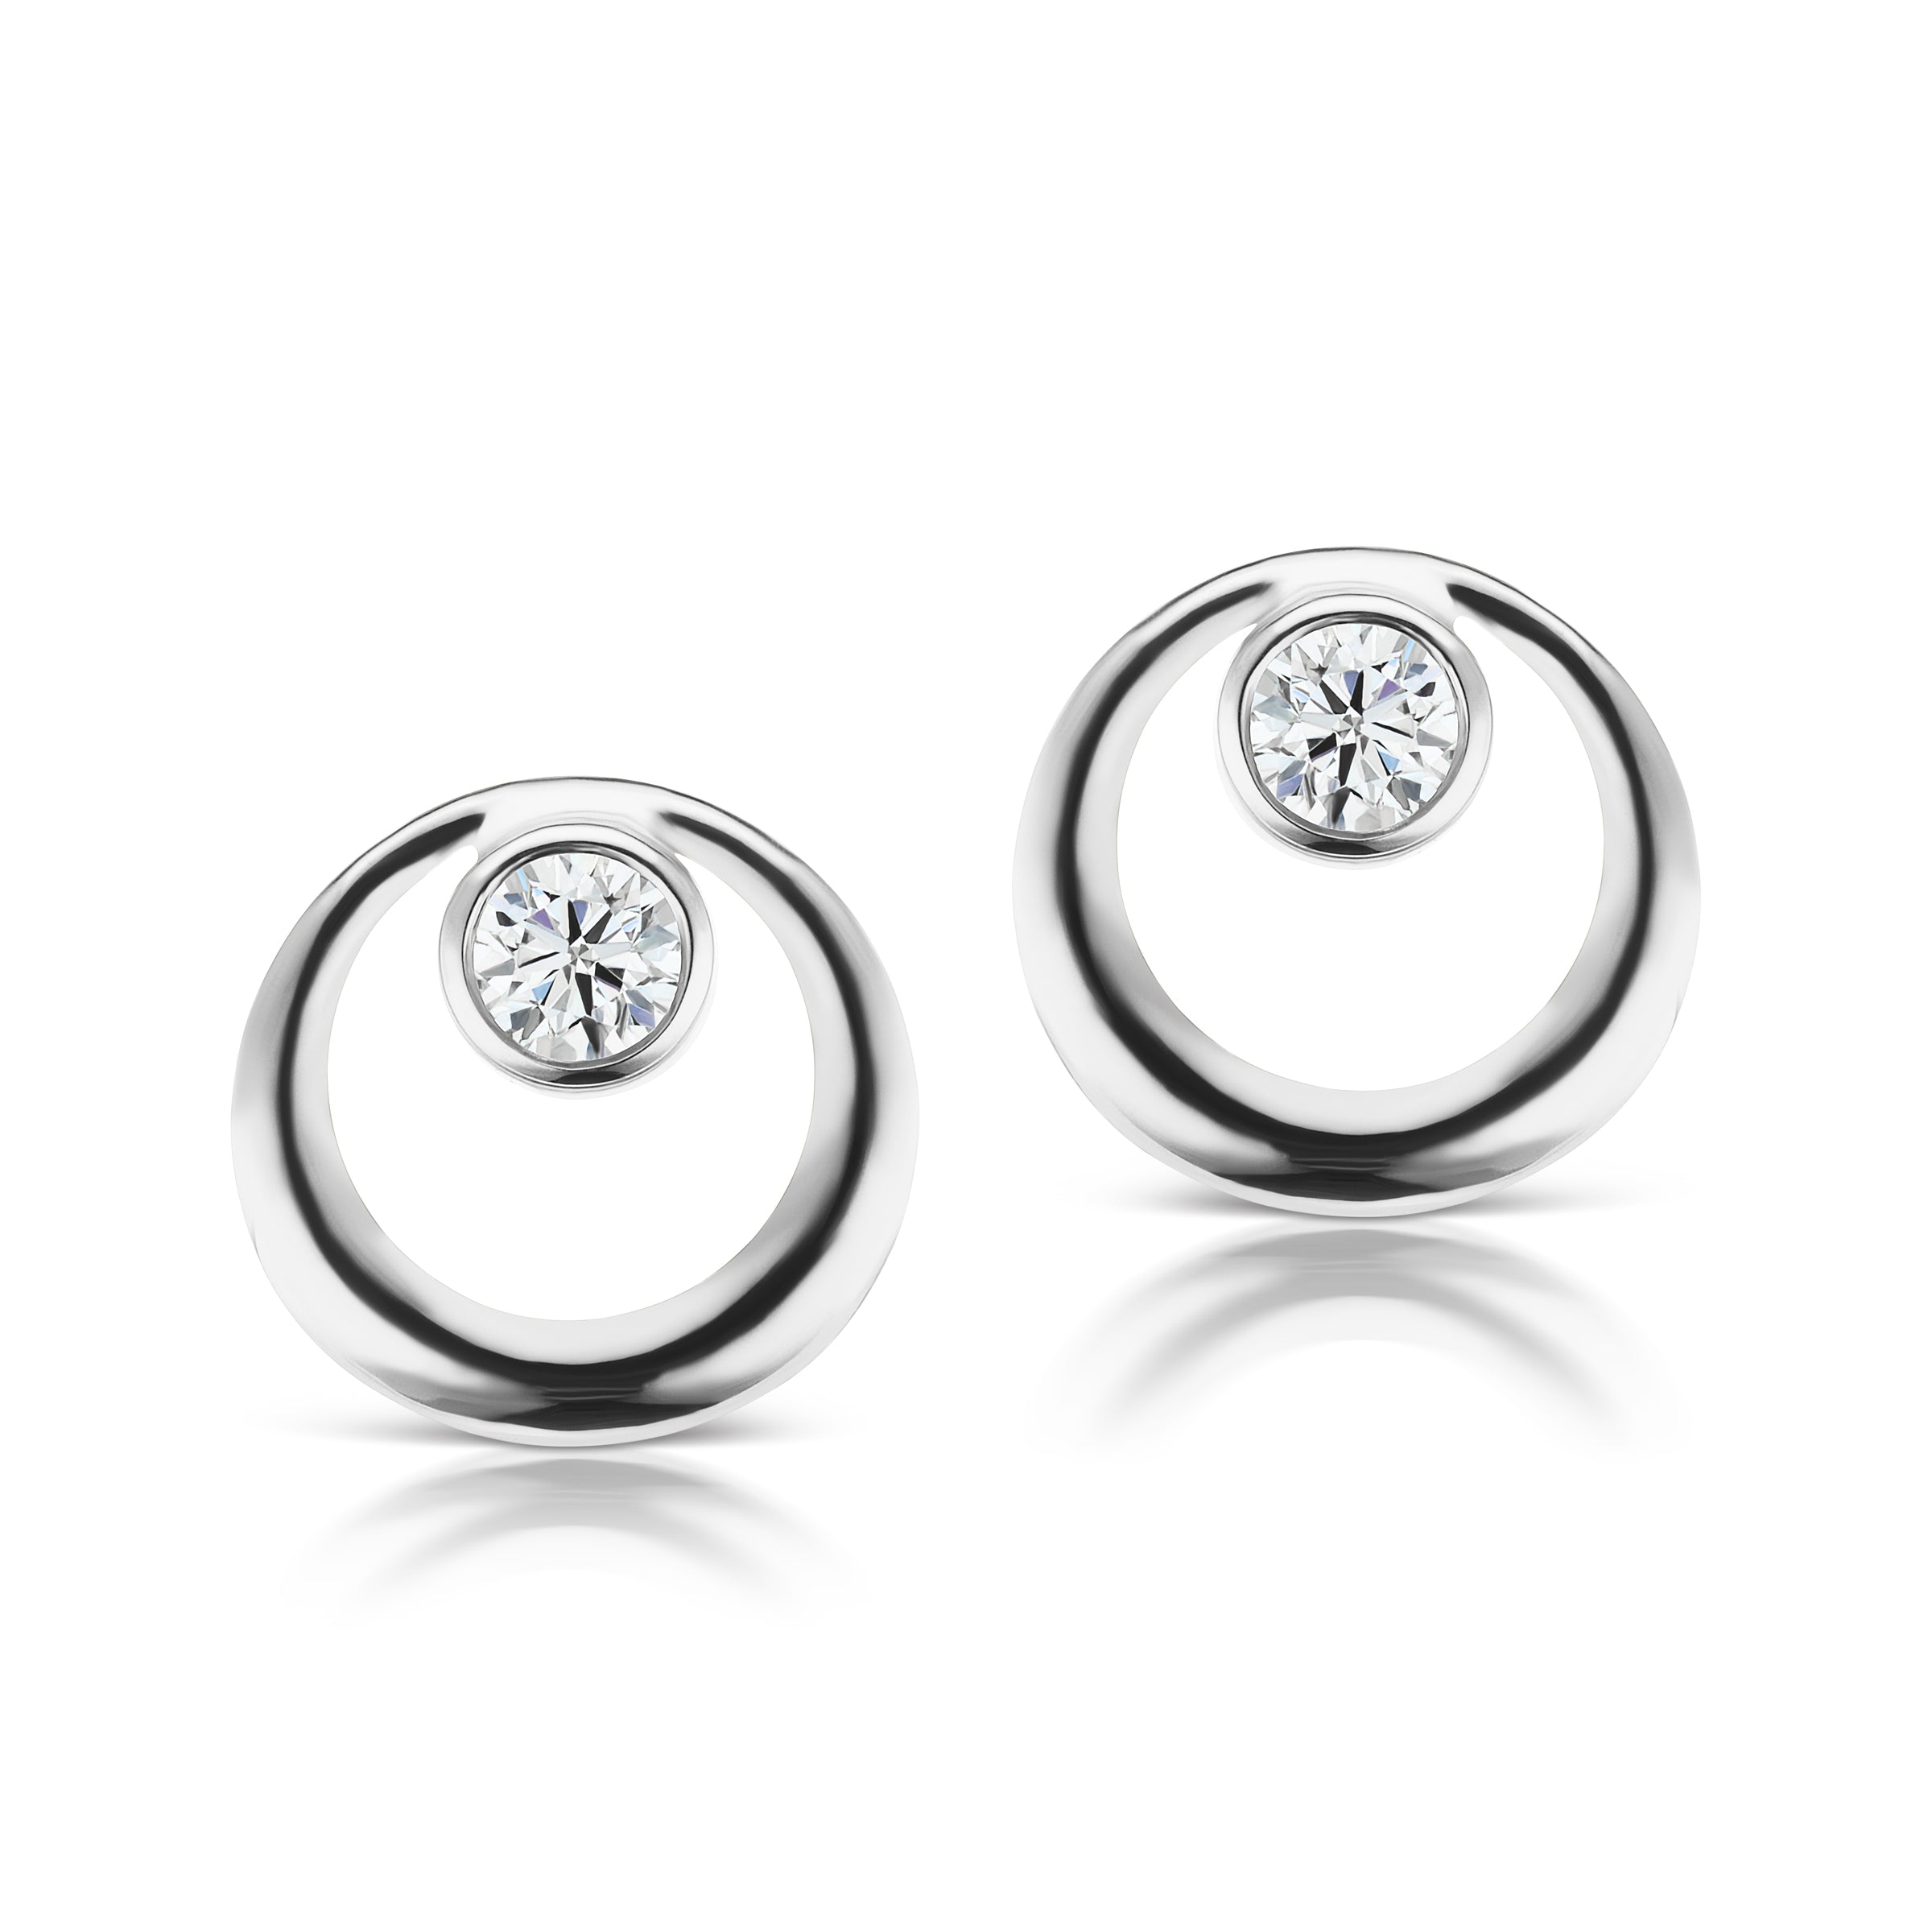 The Silver Everyday Diamond Earring